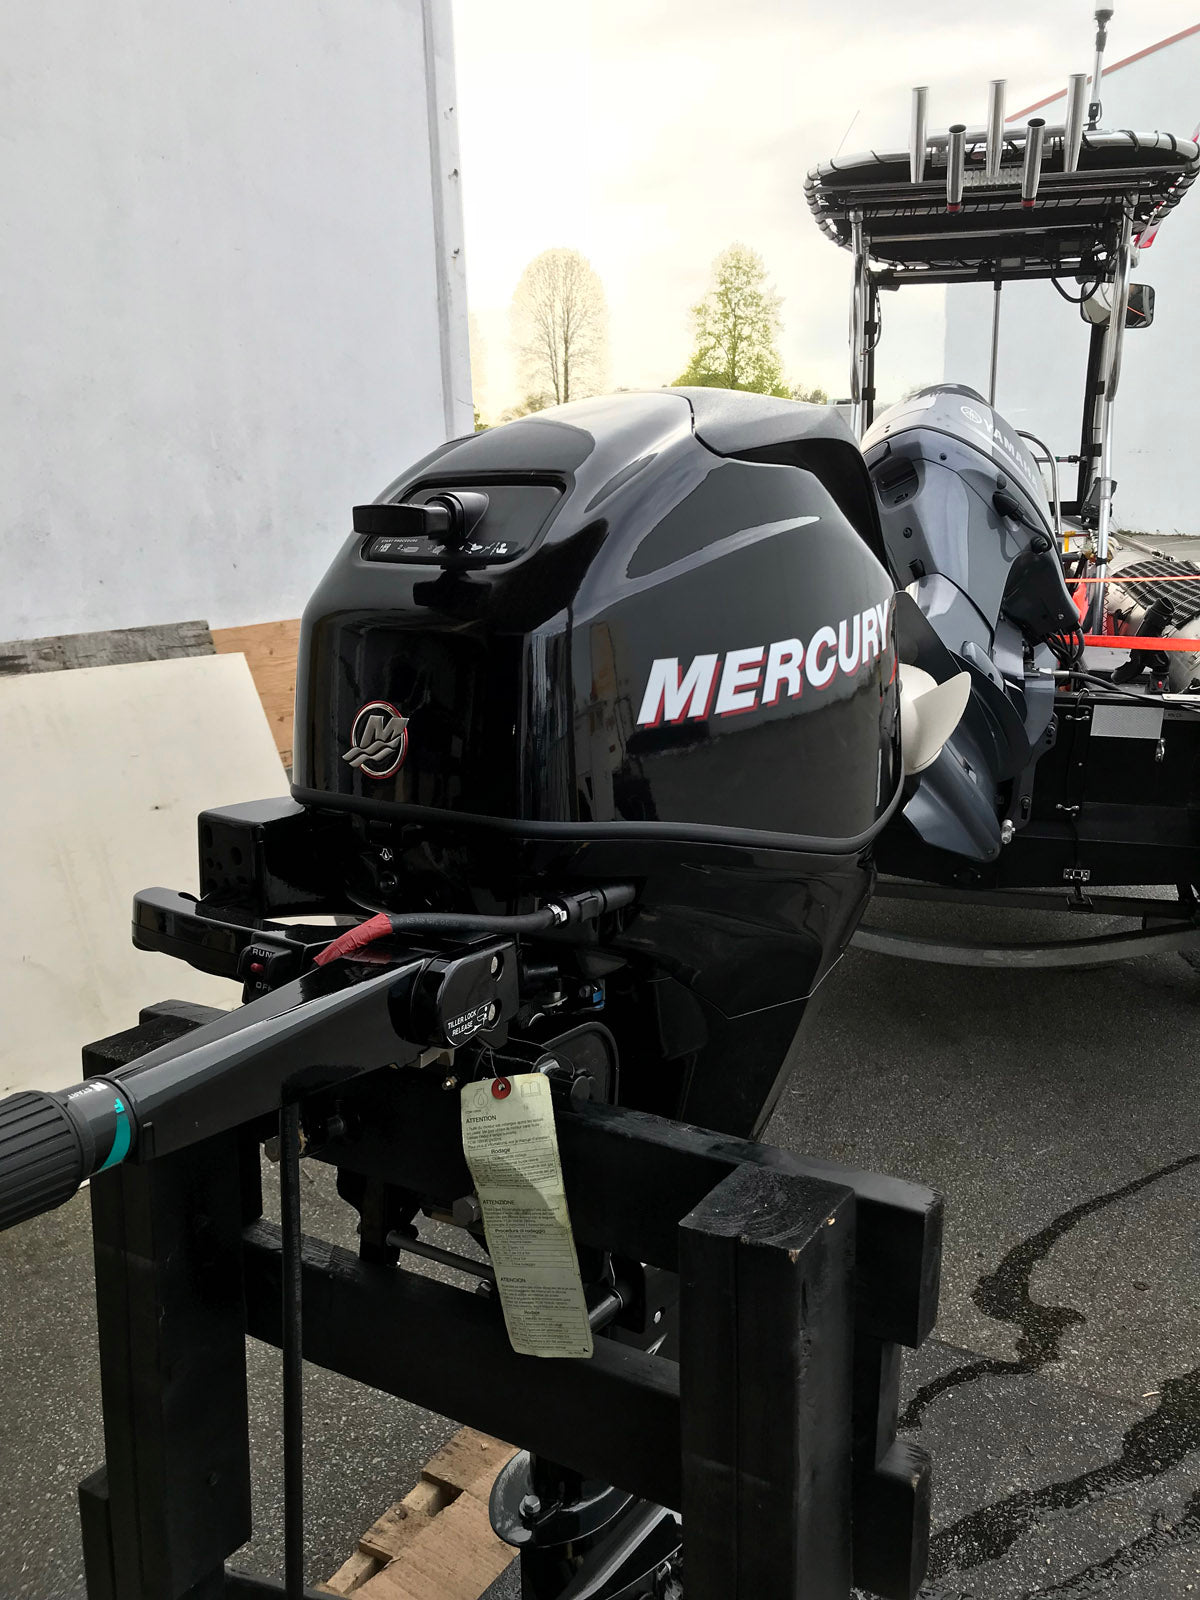 ... Mercury 25 HP Portable 4 Stroke Outboard Motor, Manual Start - Like New  Warehouse Deal ...